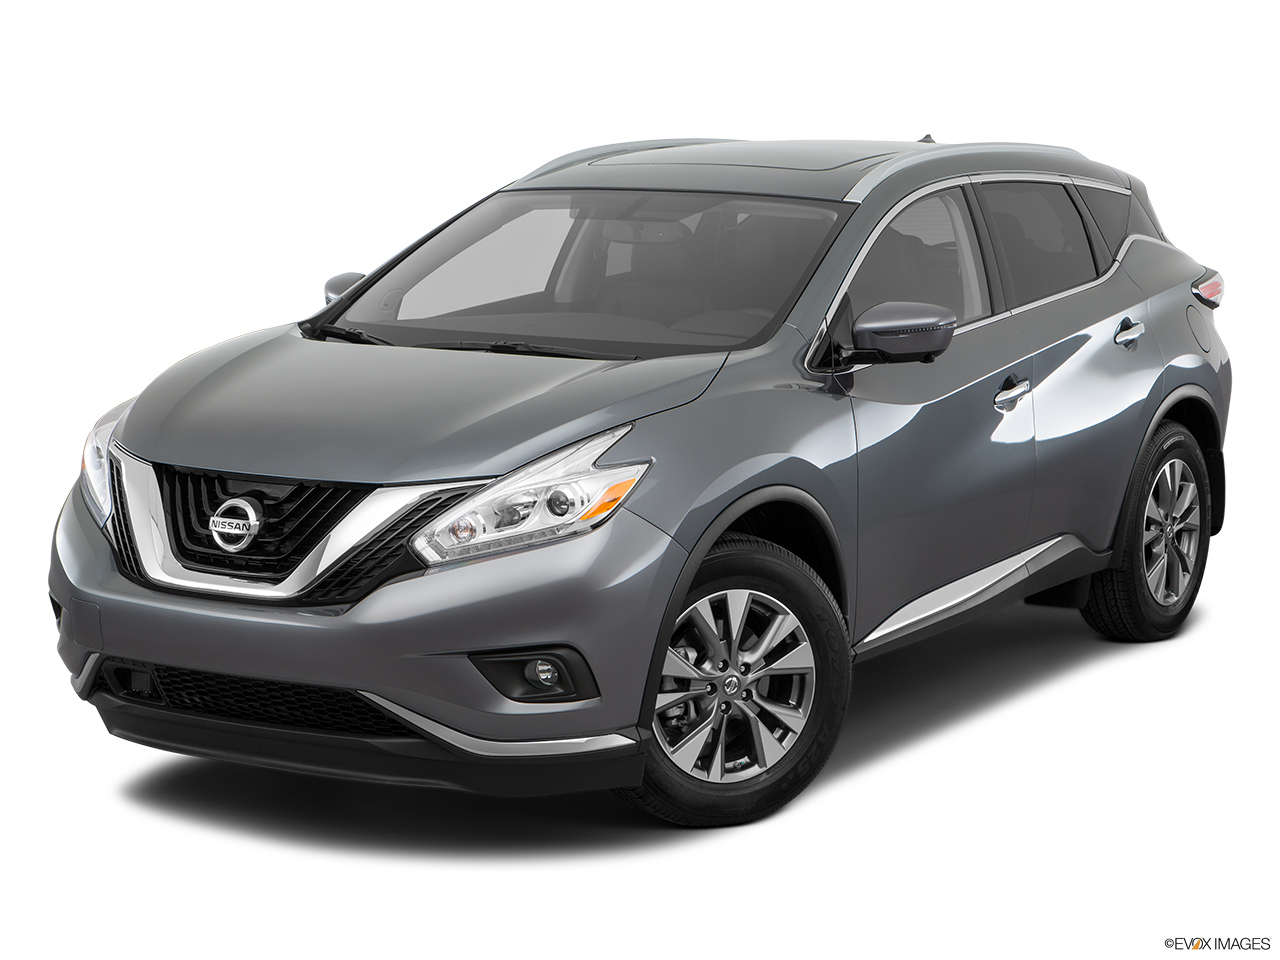 2017 nissan murano prices in bahrain gulf specs reviews for manama yallamotor. Black Bedroom Furniture Sets. Home Design Ideas